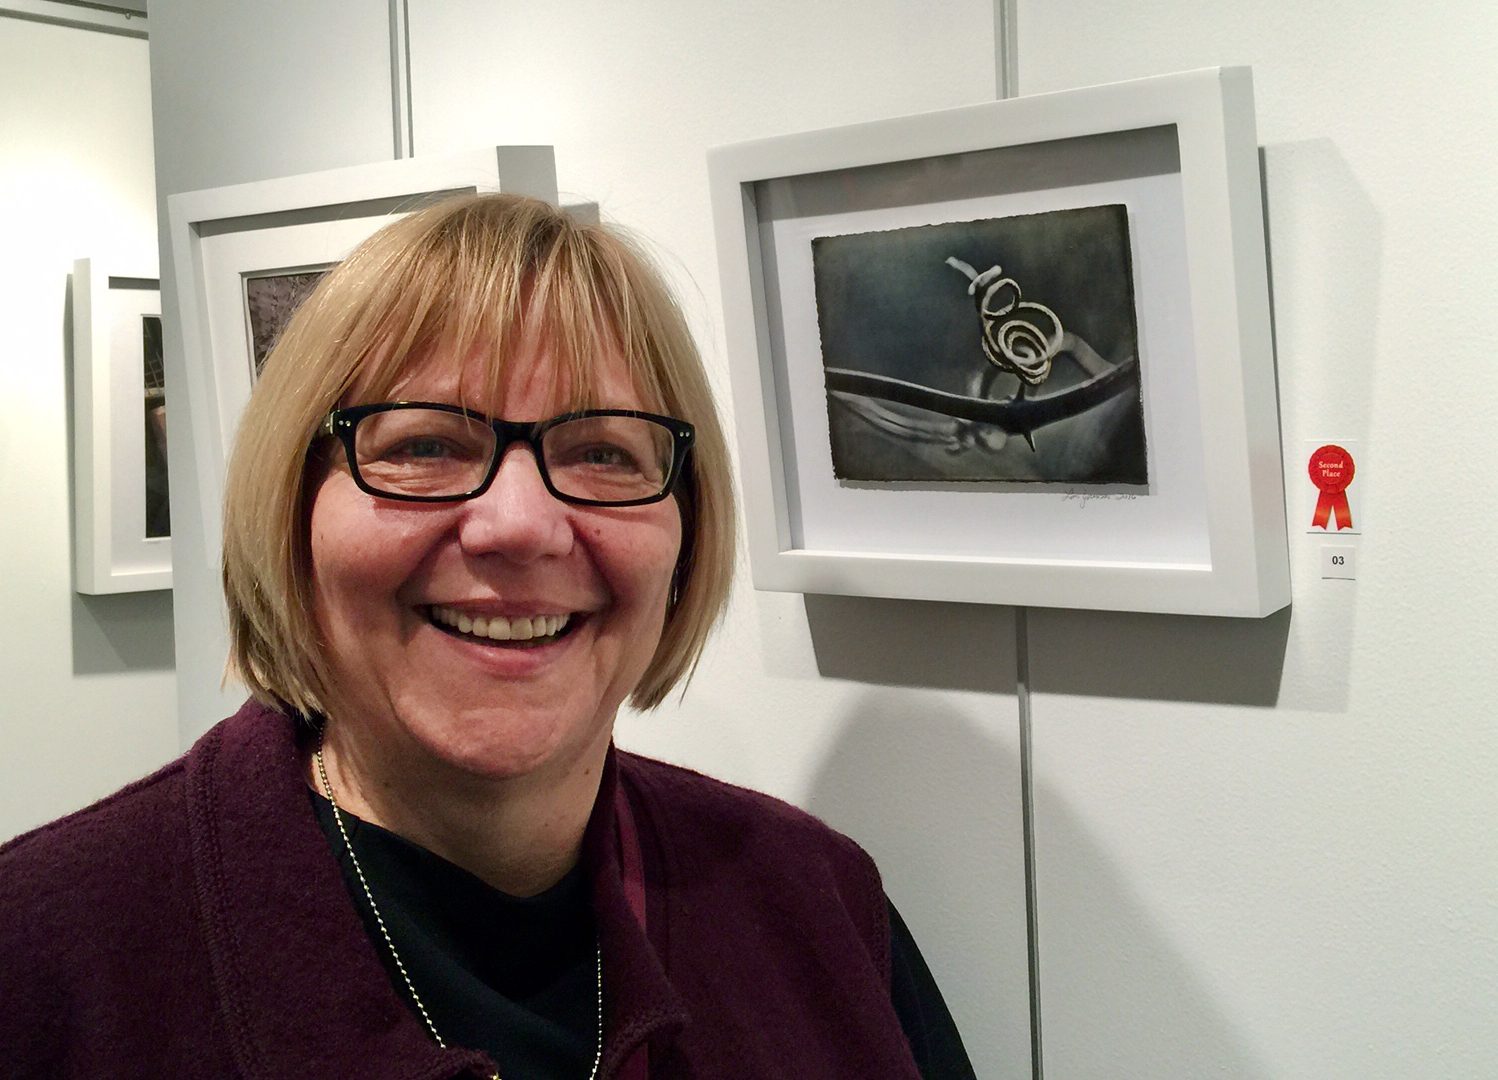 Second Place Prize winner Lois Youmans with her work Tendril